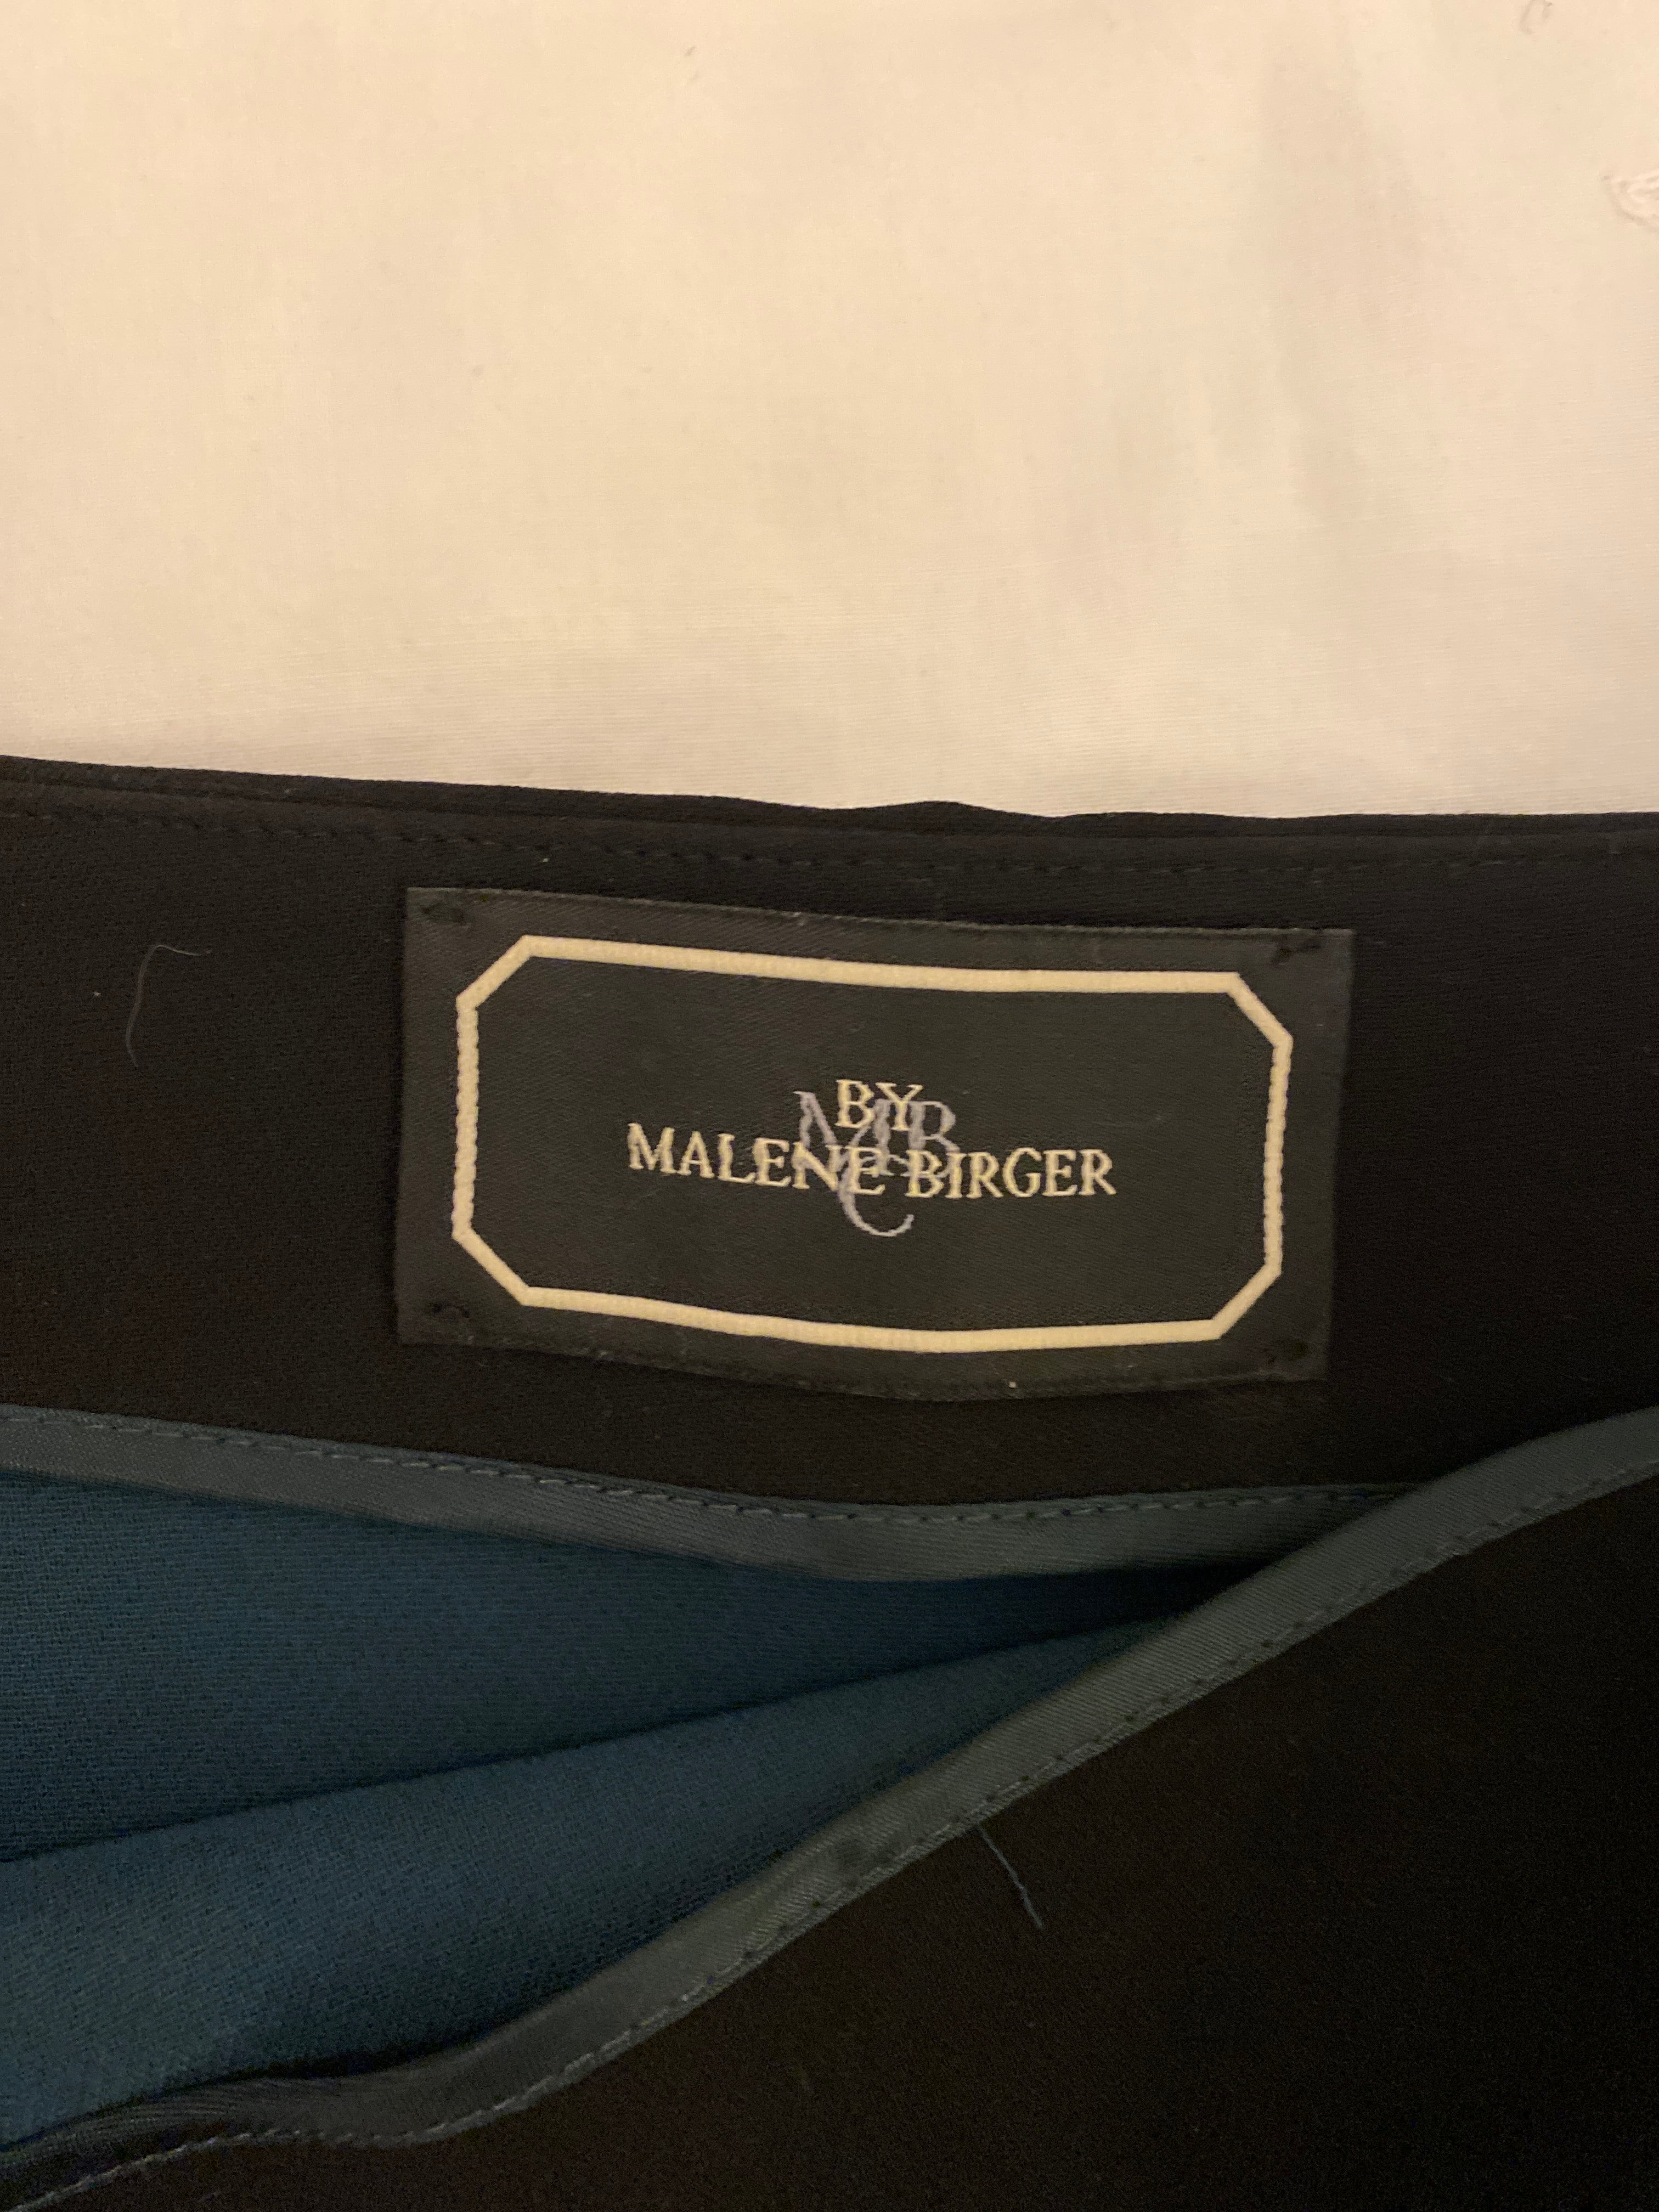 Malene Birger Very Nicely Cut Short Skirt in Black and Dark Green Interior Size 36 (EU)